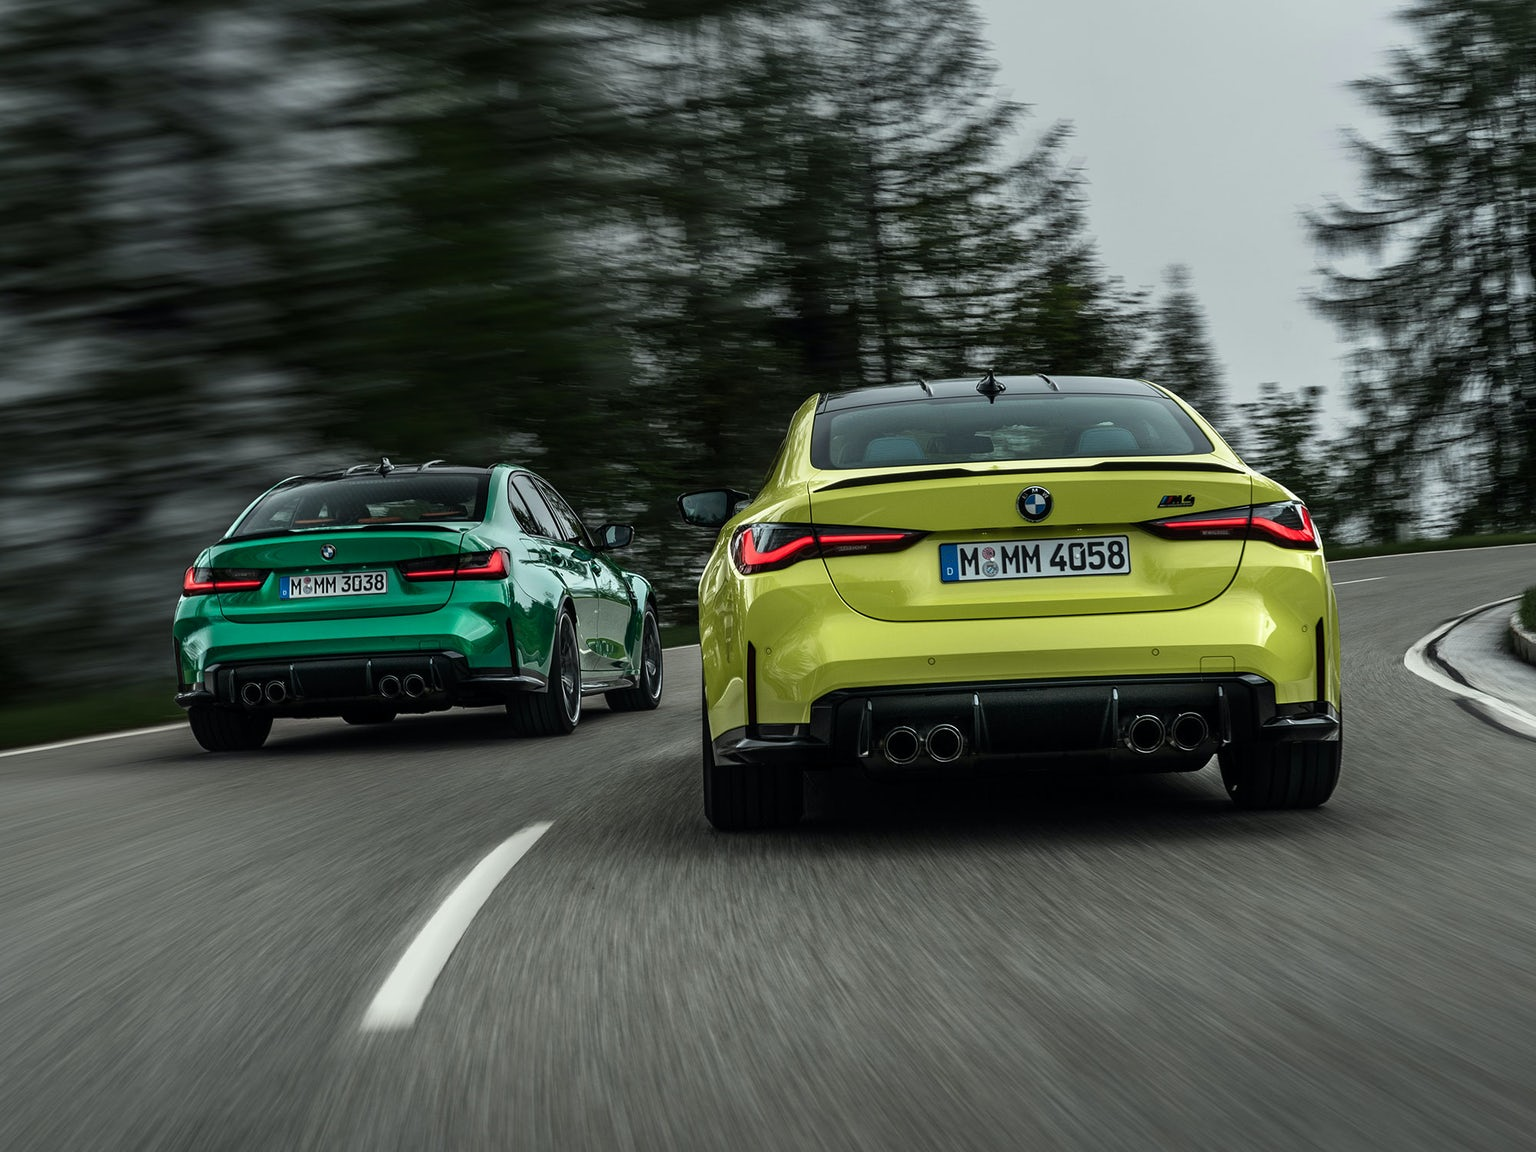 bmw-m3-m4-competition-green-yellow-driving-rear-2.jpg